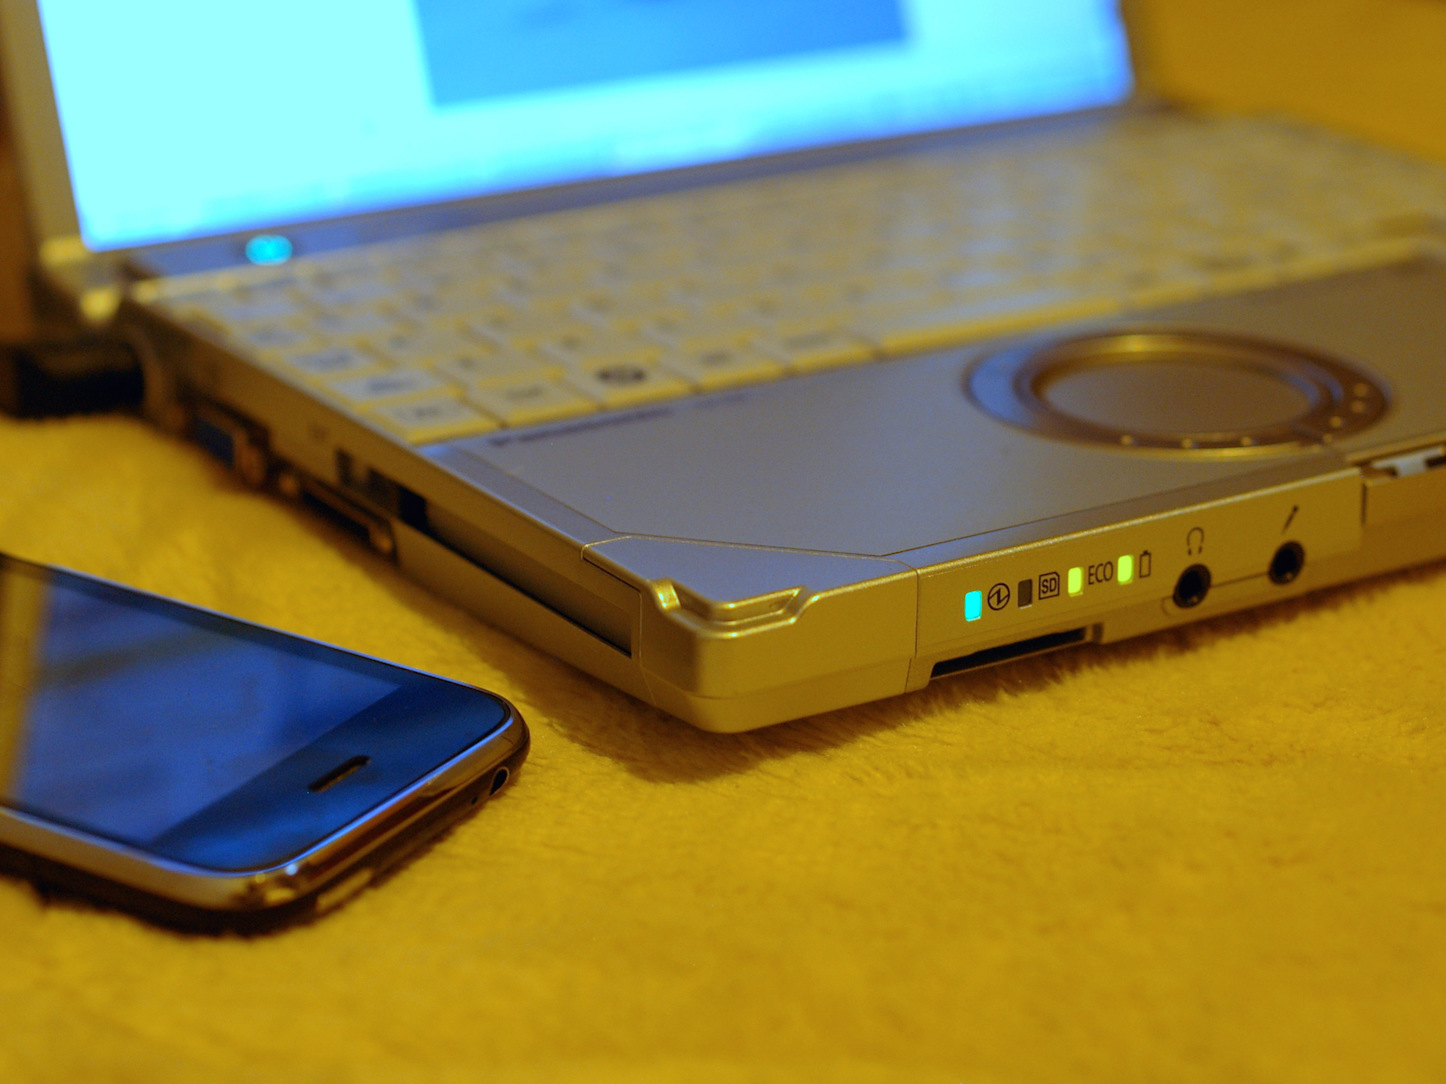 Windows PC and iPhone